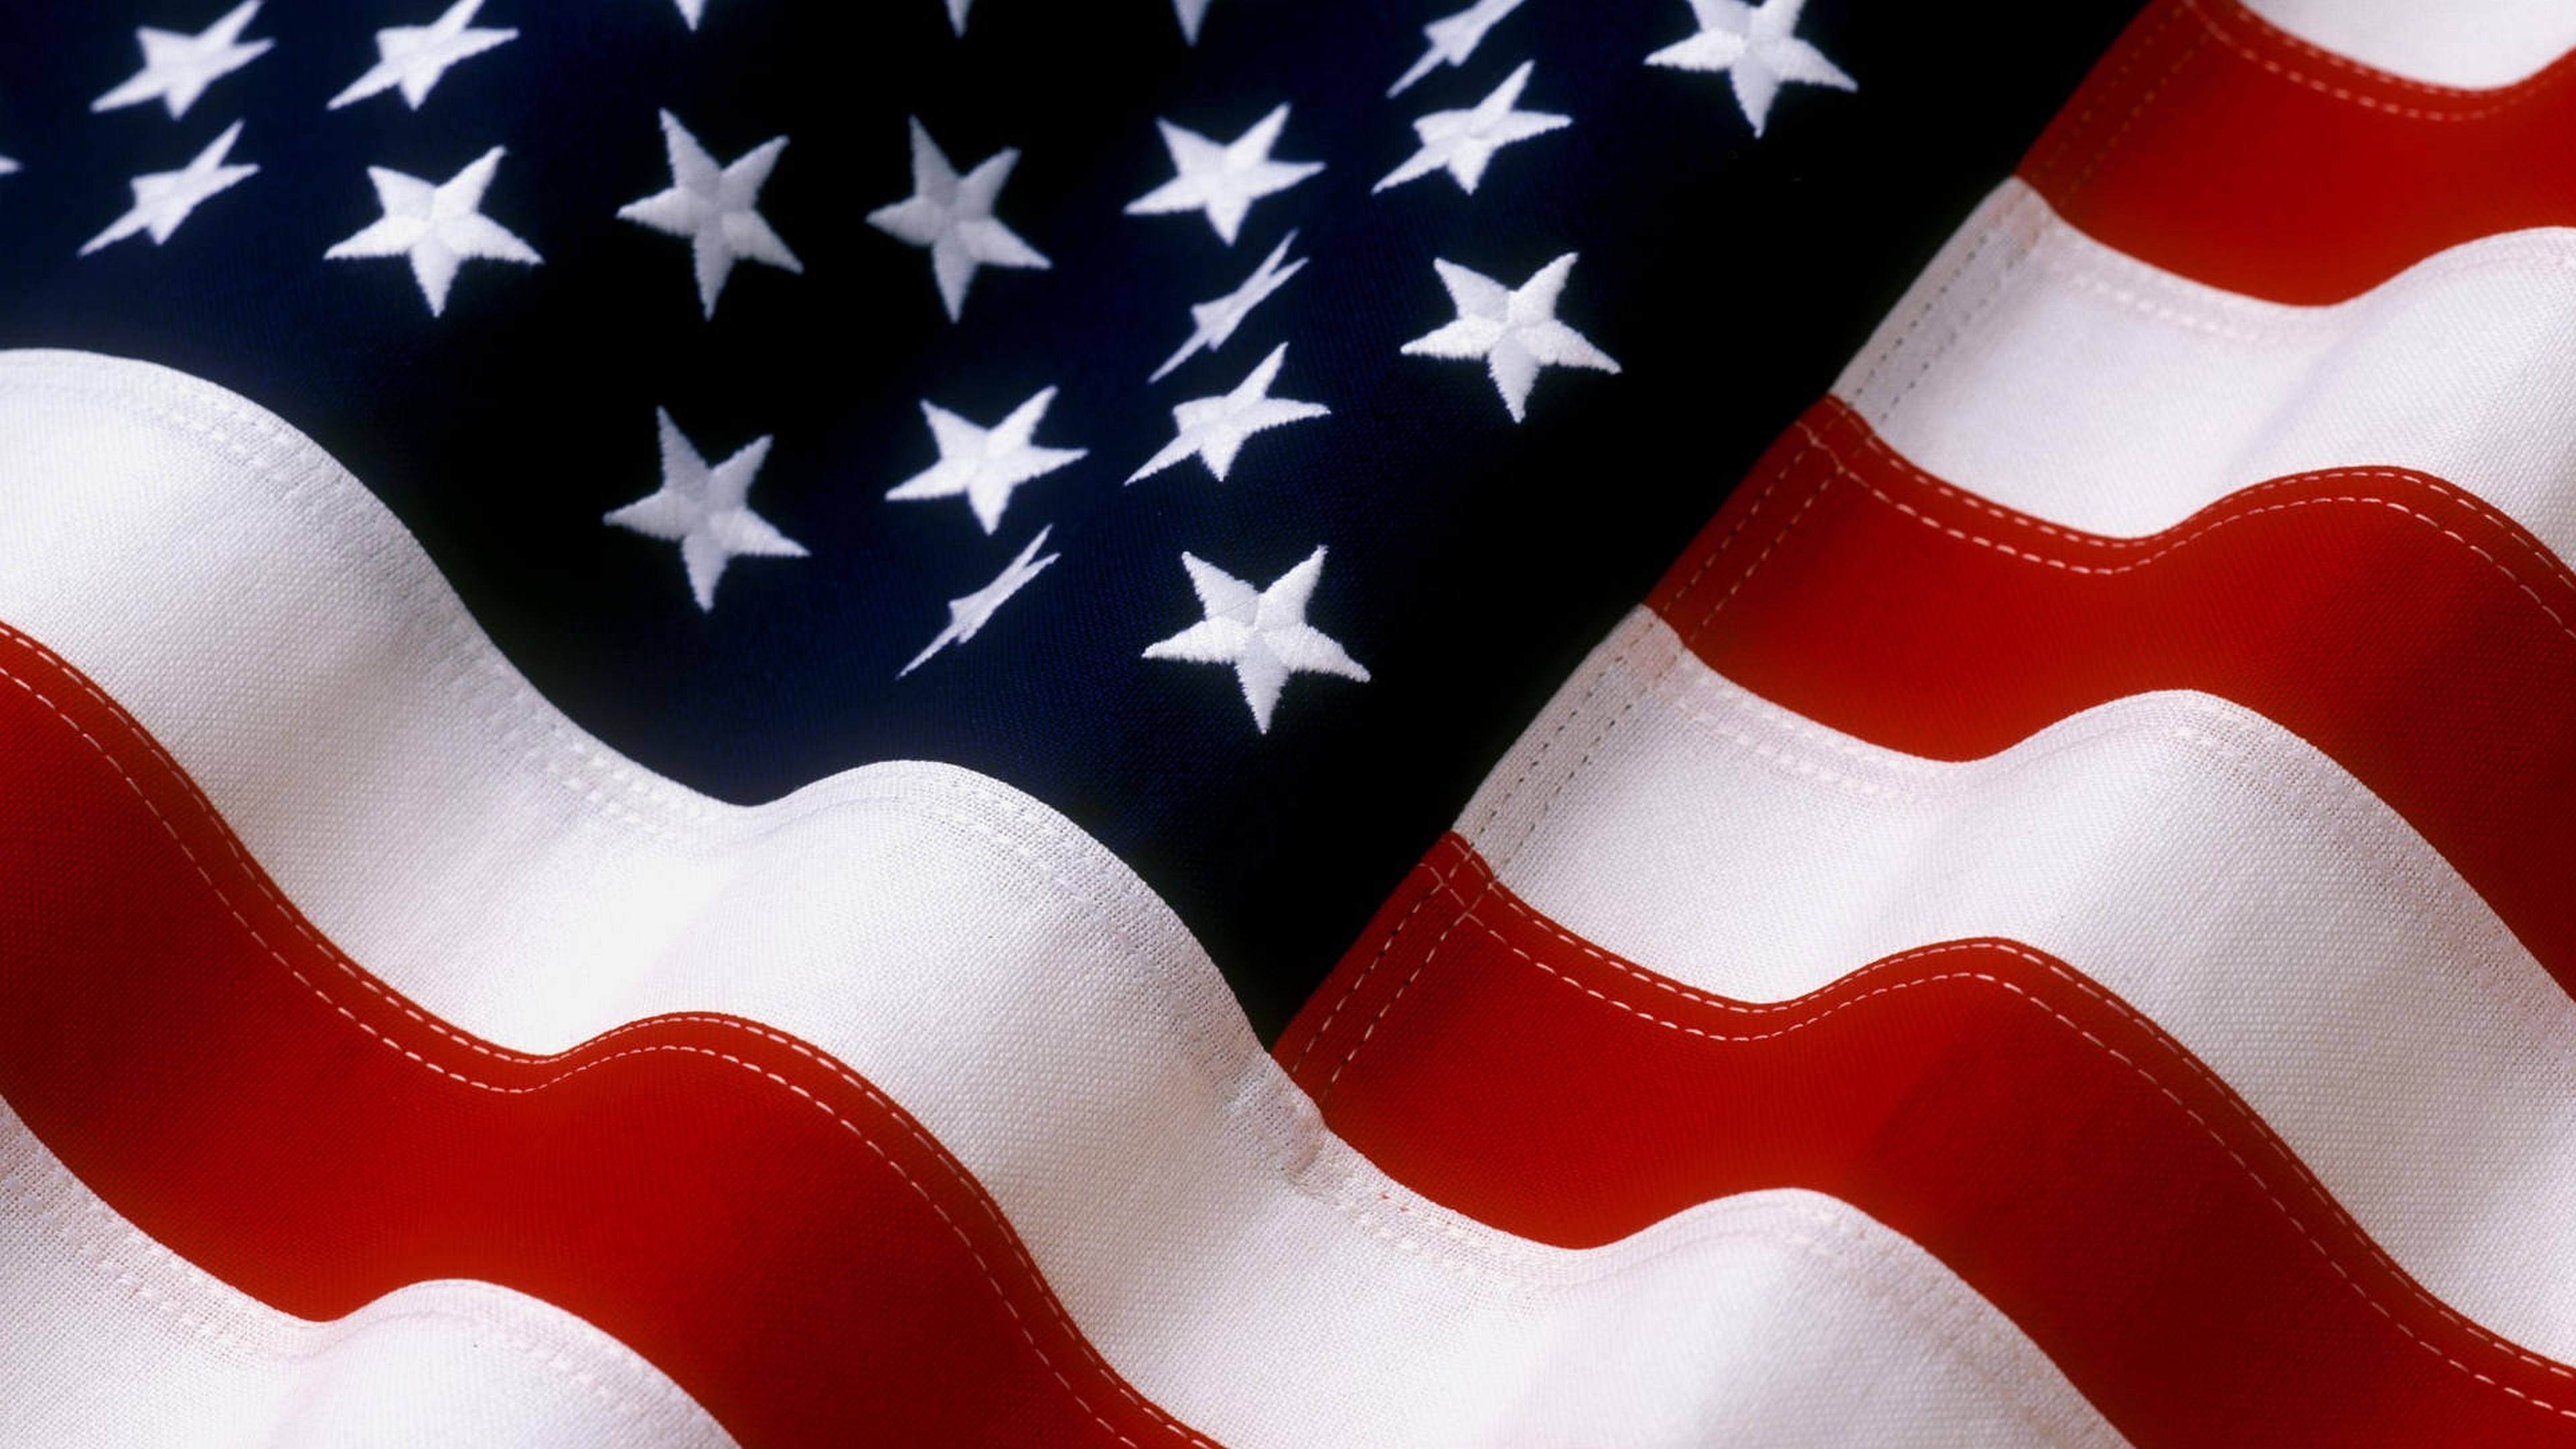 american flag pictures background free download